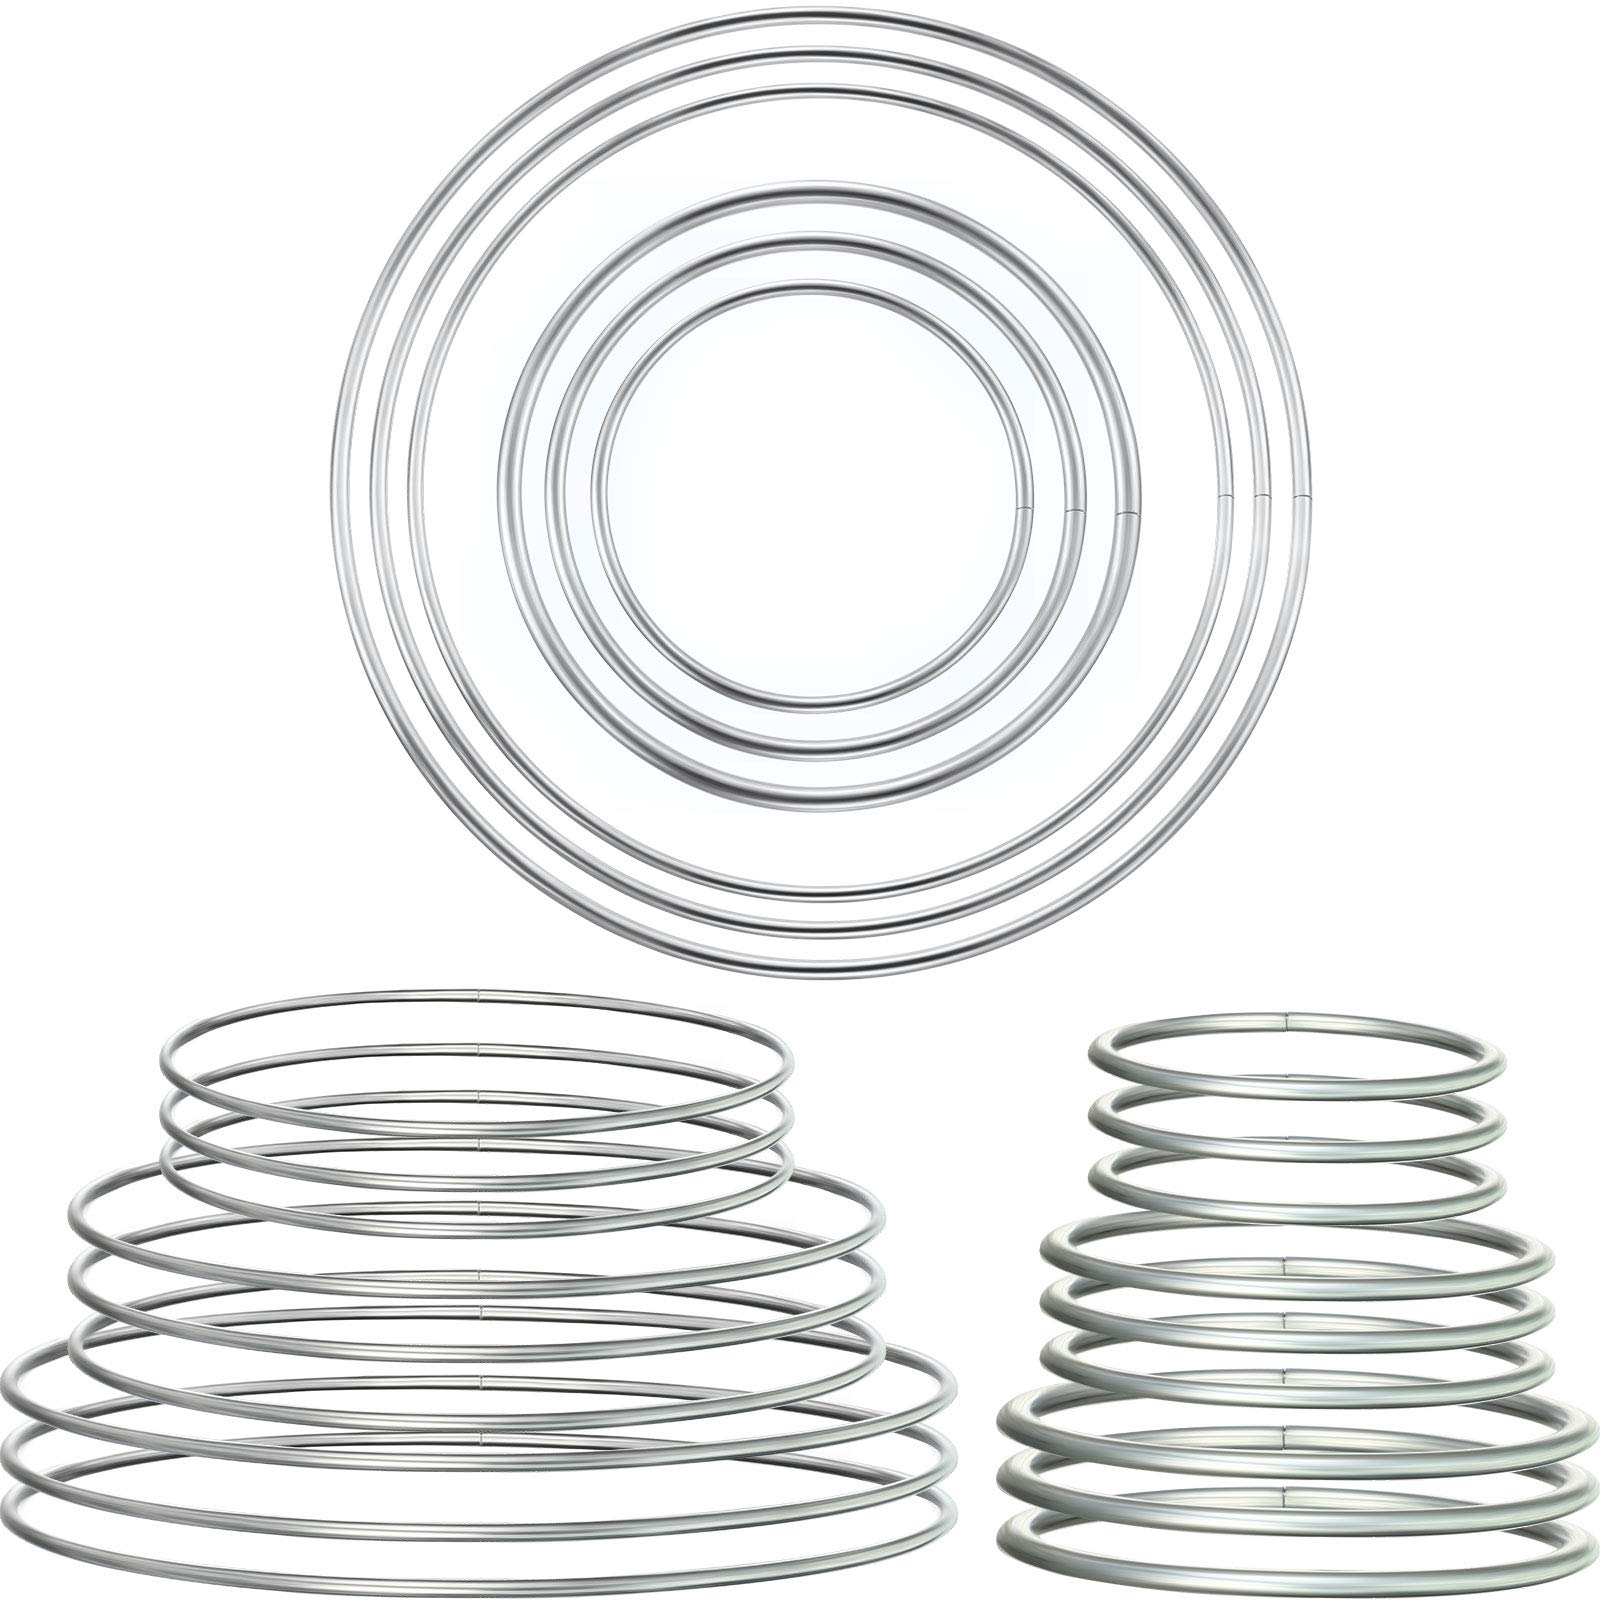 24 Pieces Metal Rings Hoops Metal Dream Catcher Rings Metal Macrame Rings Steel Craft Rings Metal Floral Hoop for Wreaths Macrame Projects (Silver, 3/5/ 7/10/ 14/16 cm)